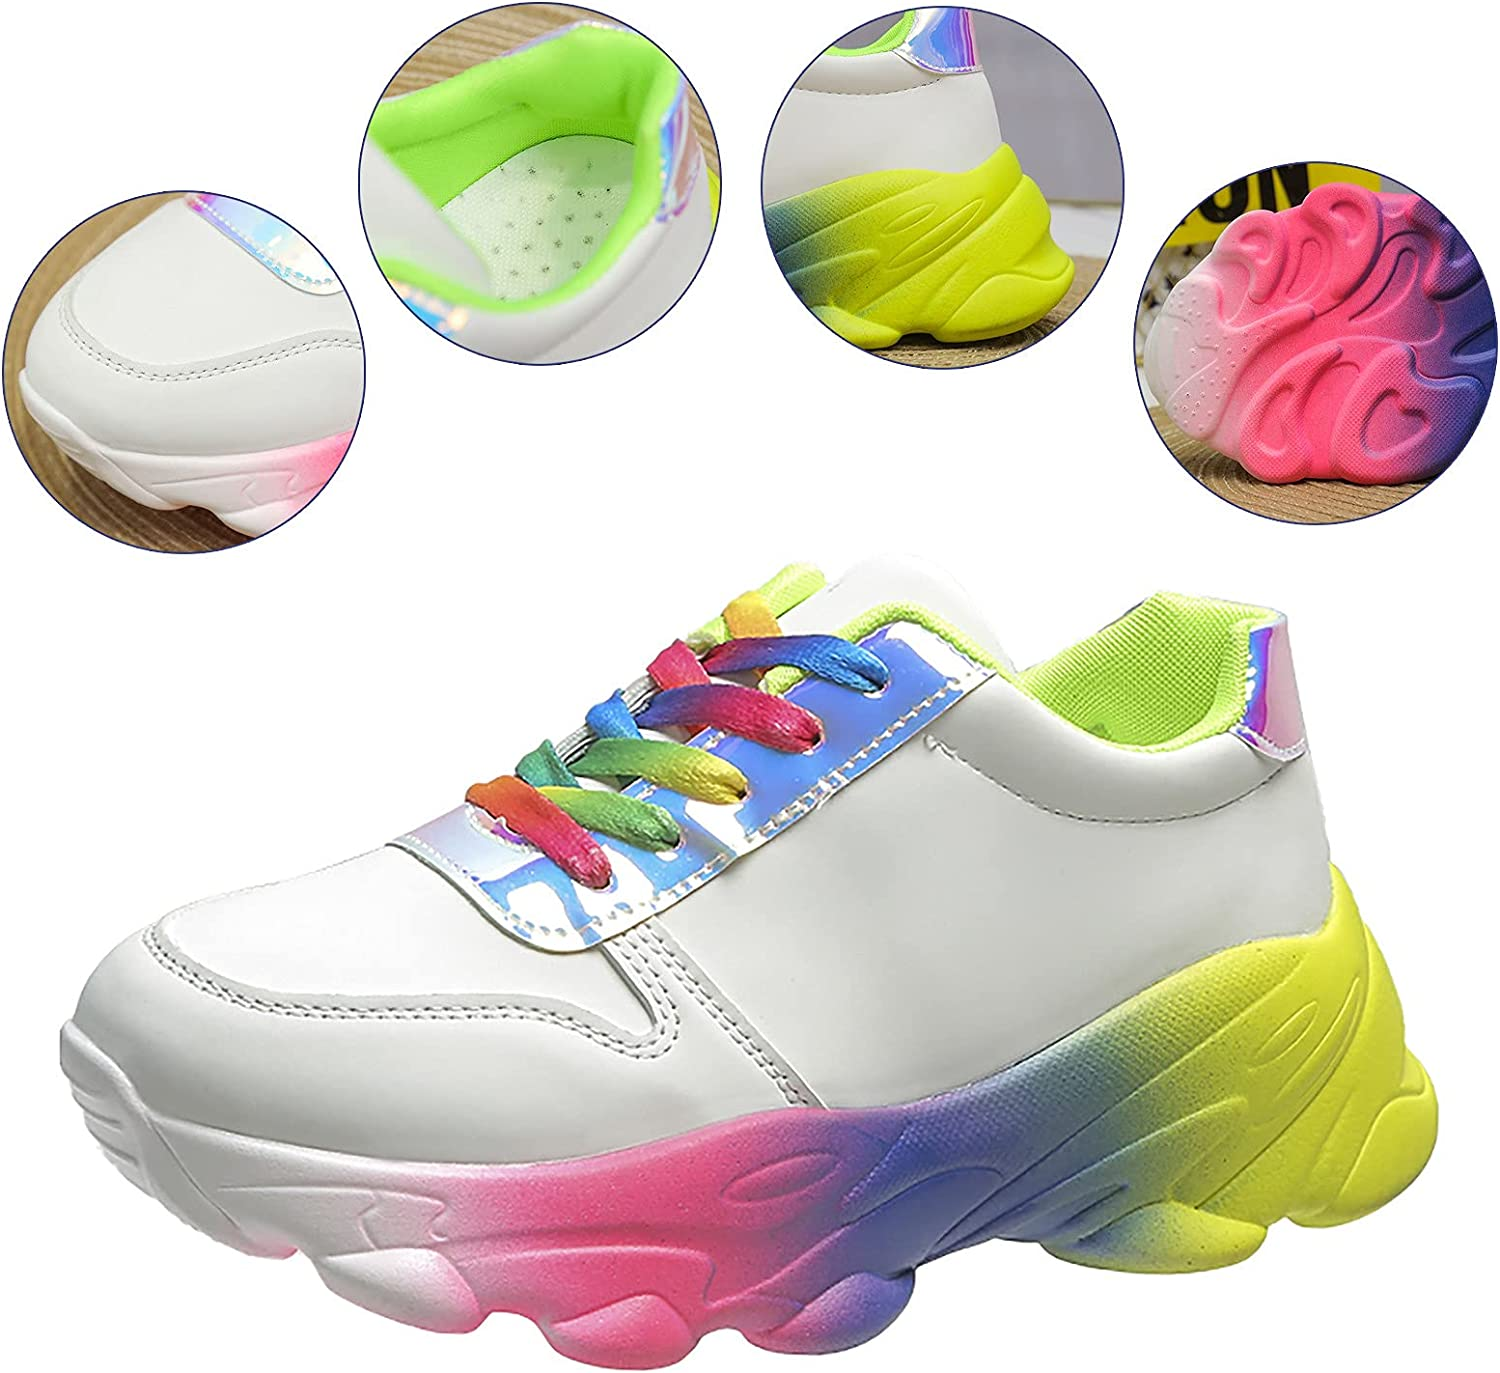 ZiSUGP Women's Fashion Wedge Sneakers White Sneakers Platform Shoes Lace Up Shoes for Ladies Sport Sneakers